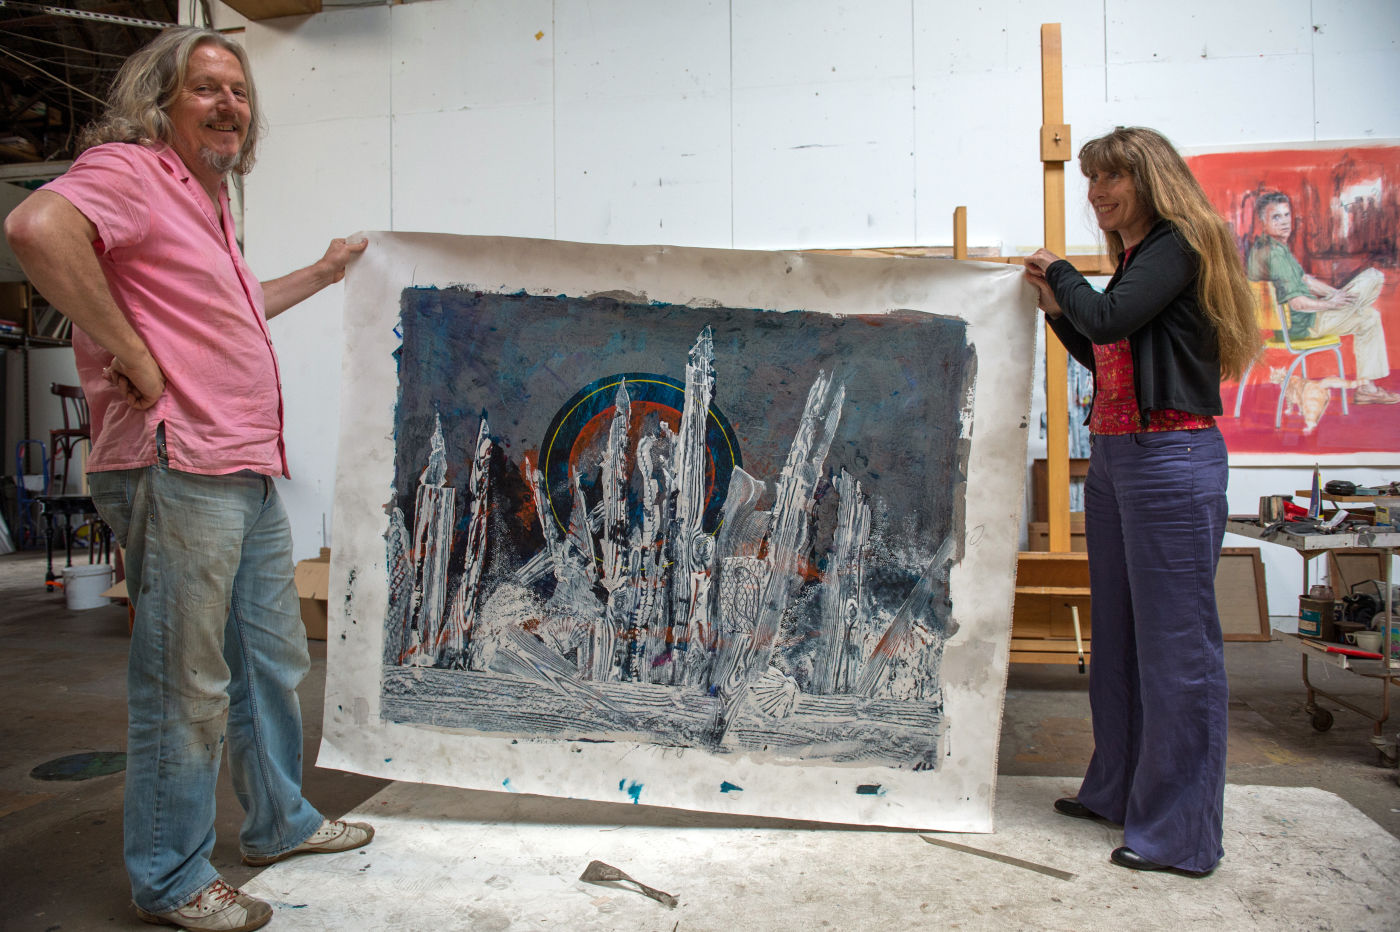 Beltracchi and his wife hold up the canvas of a Max Ernst forgery made while filming the documentary.